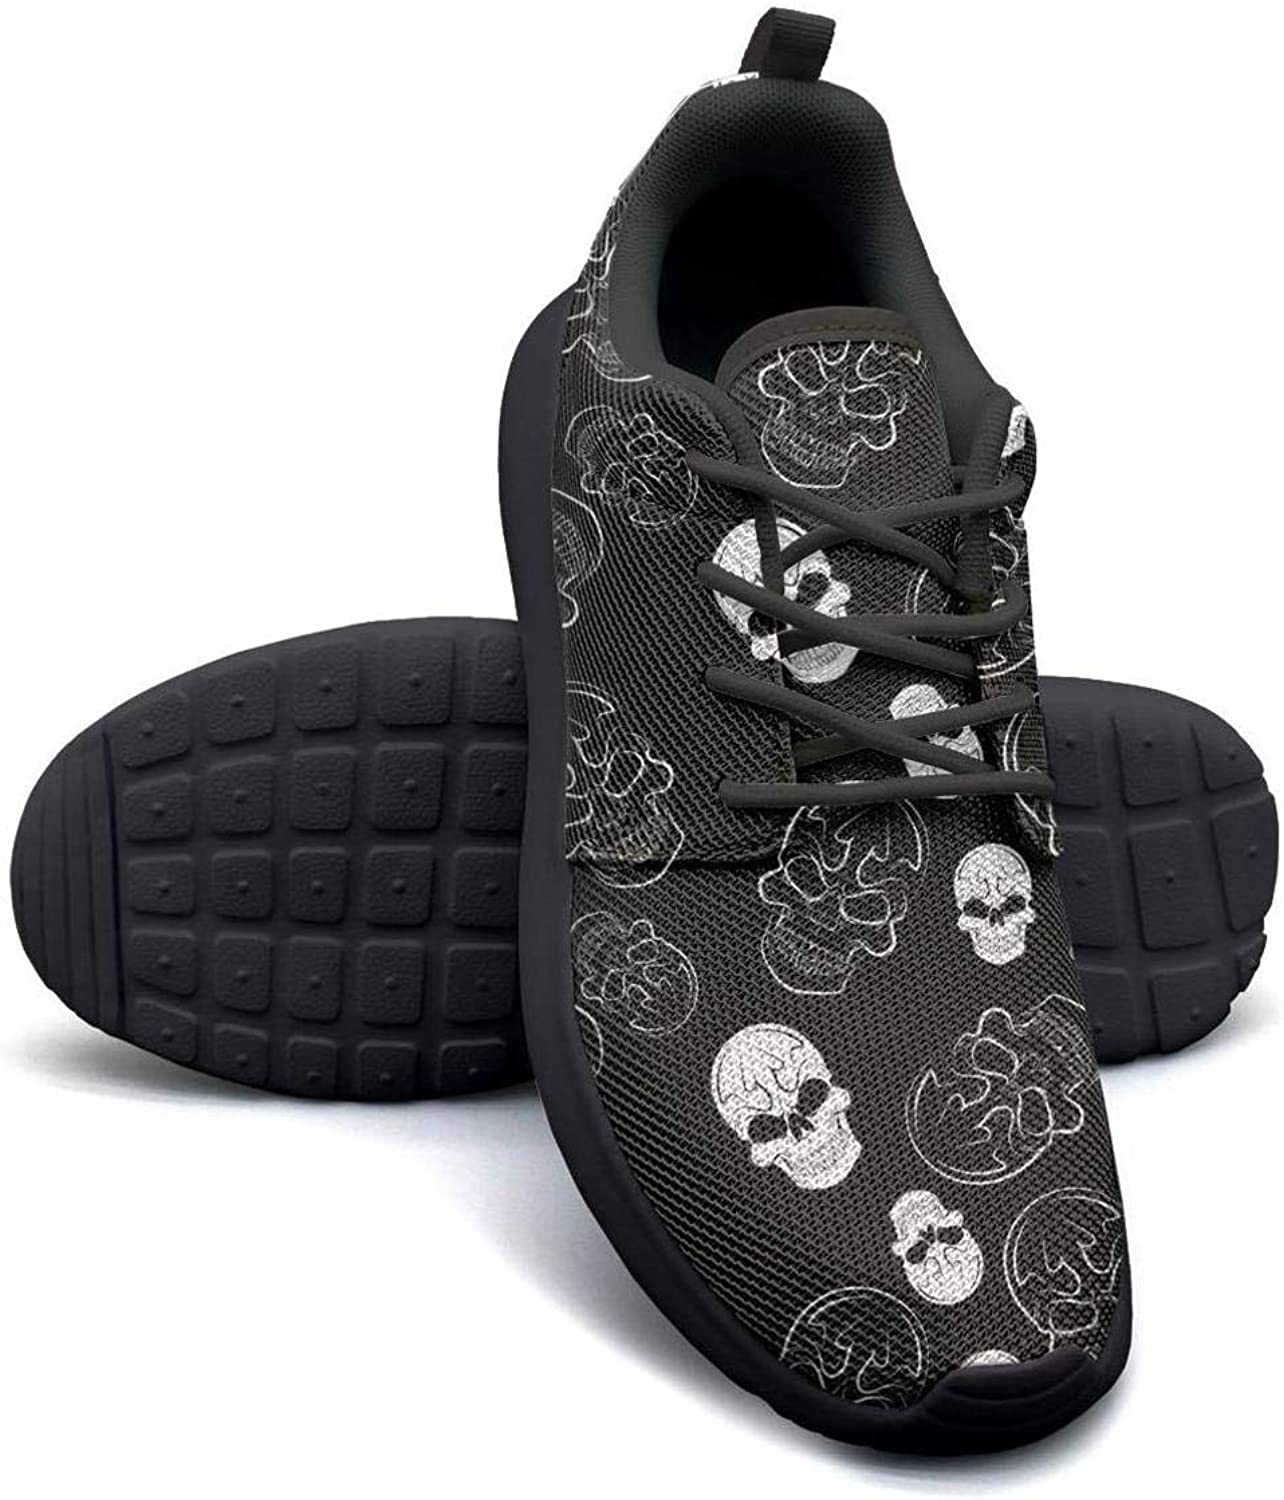 Gjsonmv Black Skull Pattern mesh Lightweight shoes for Women Comfortable Sports Cycling Sneakers shoes